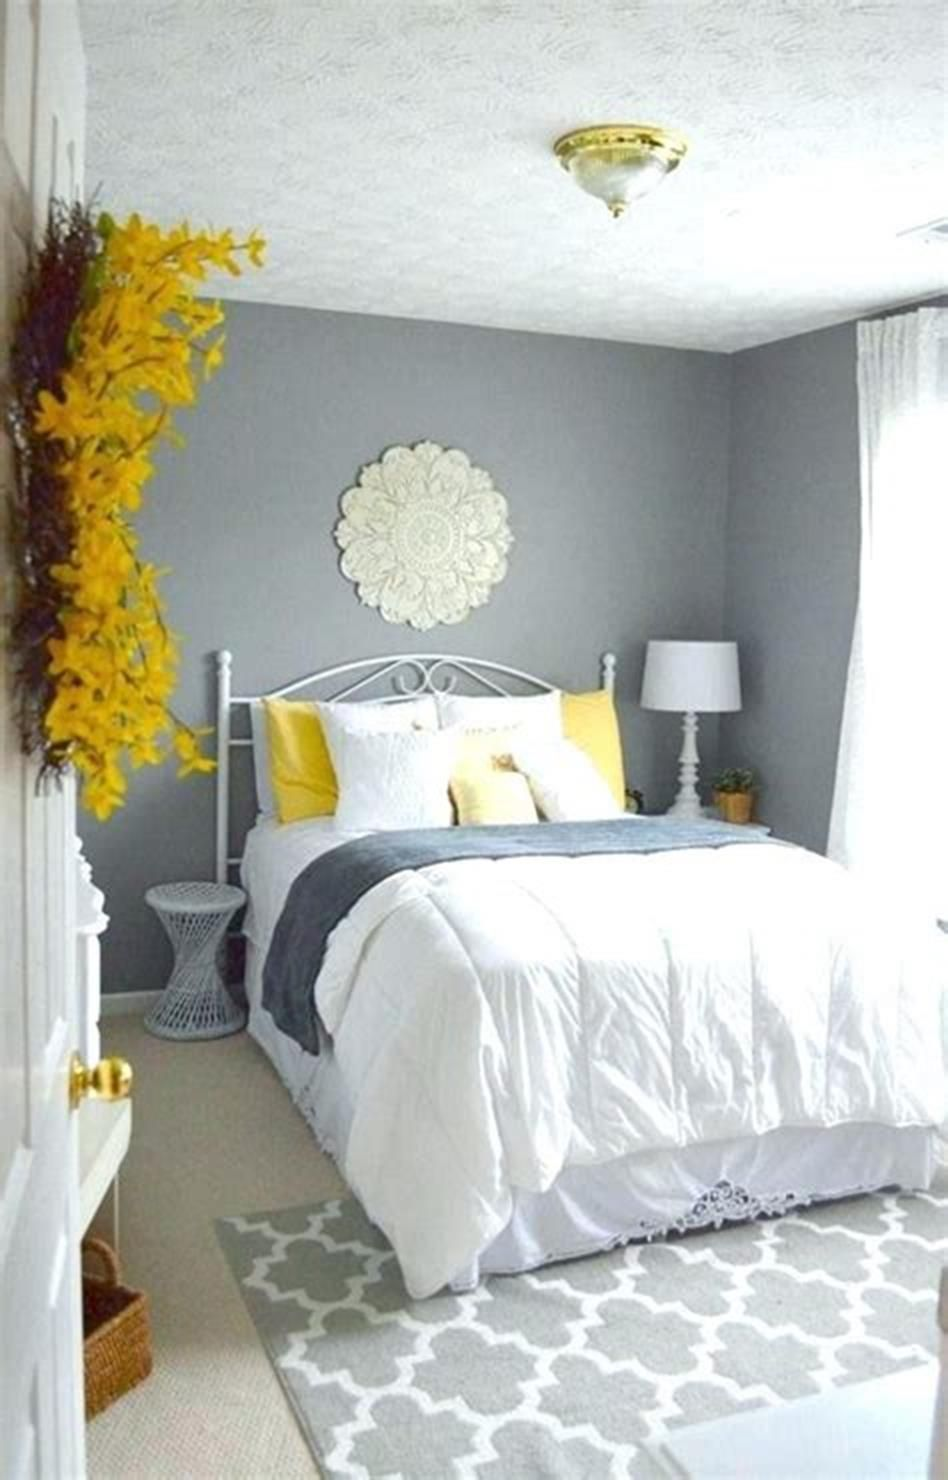 55 Amazing Small Master Bedroom Decorating Design Ideas On A